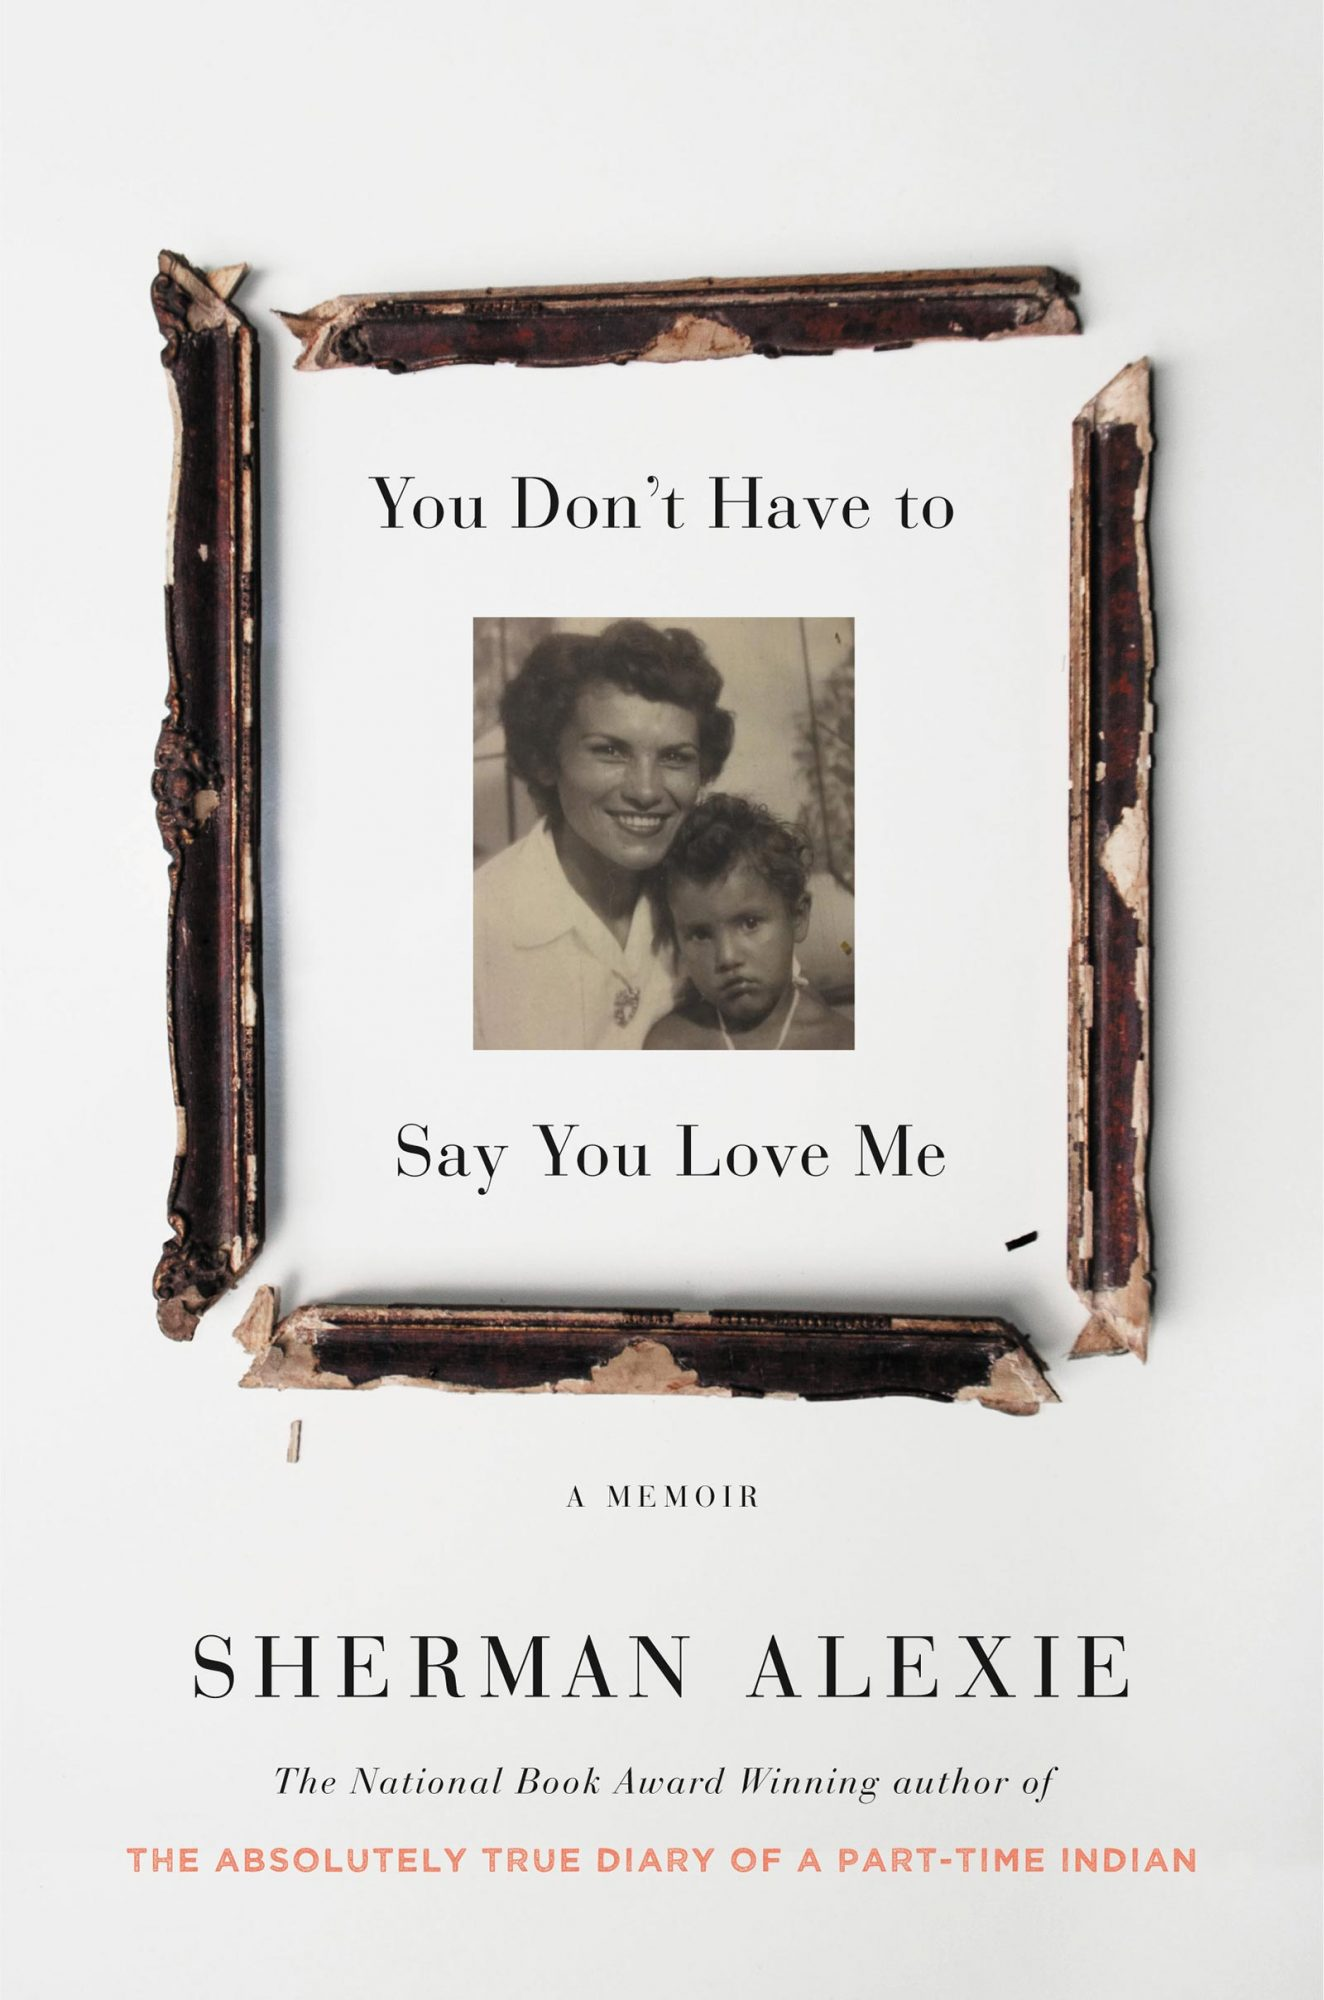 You Donít Have to Say You Love Me (6/13/17)by Sherman Alexie